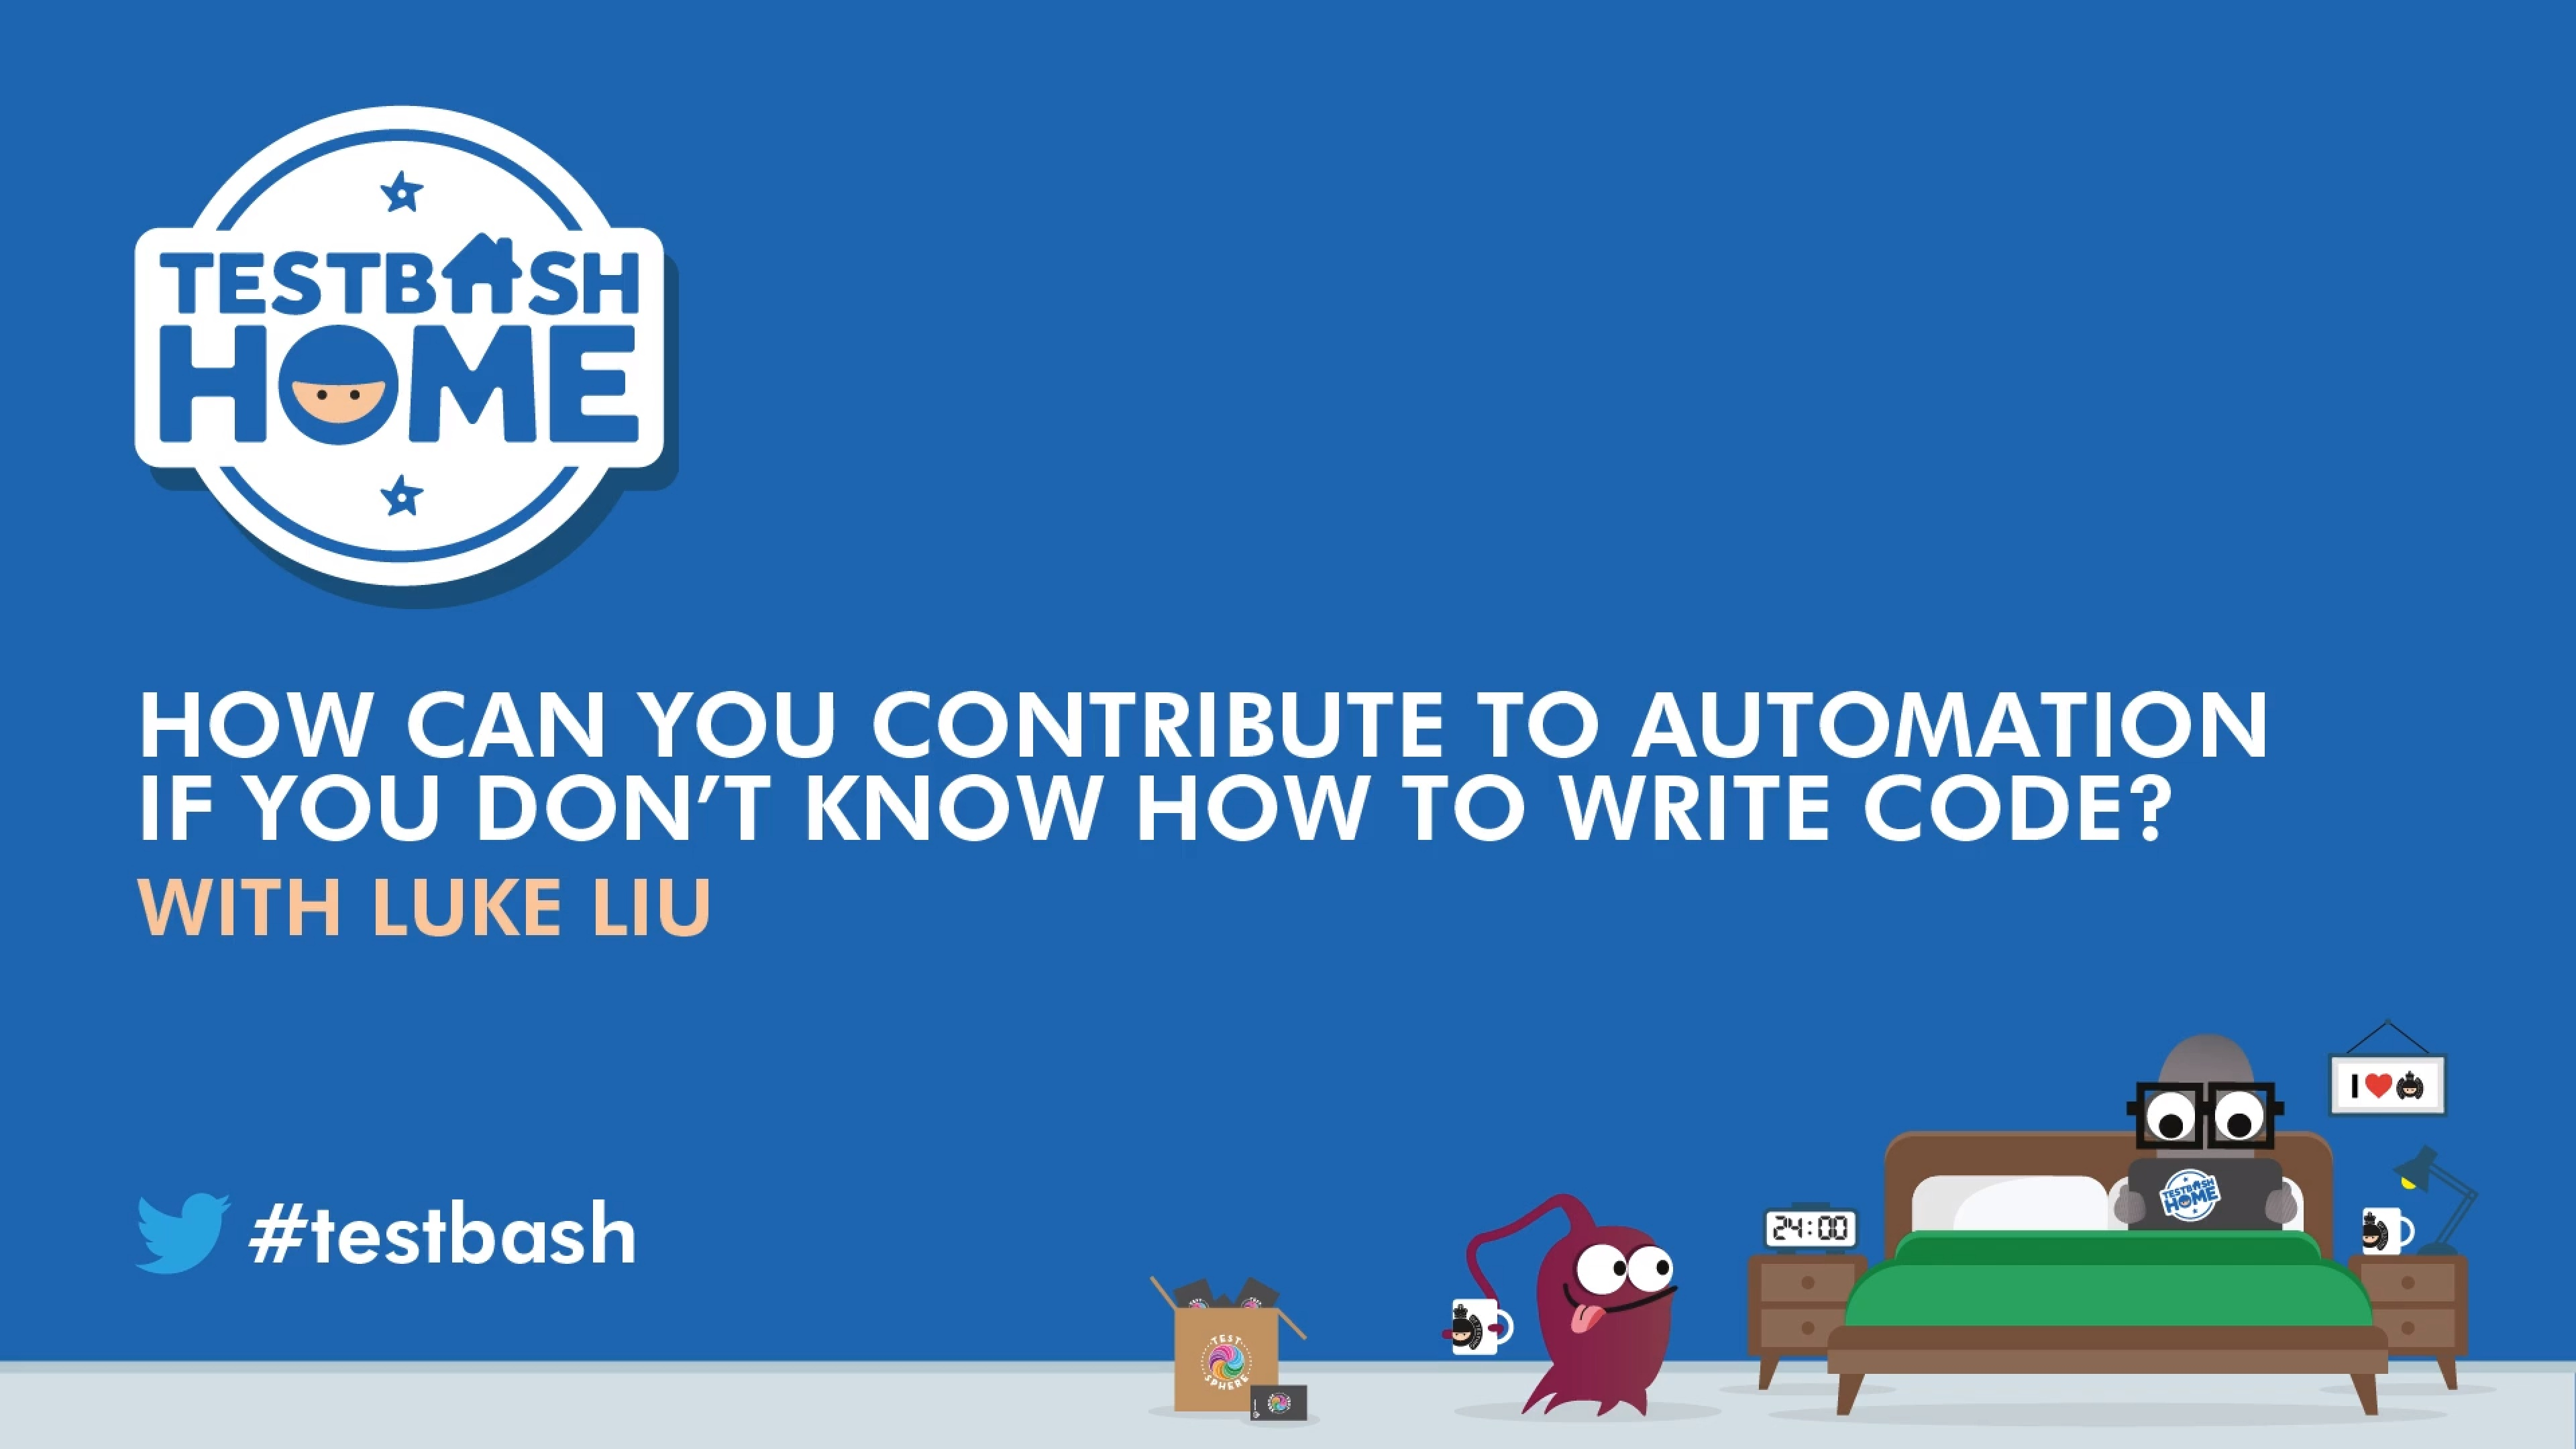 How Can You Contribute to Automation If You Don't Know How to Write Code?